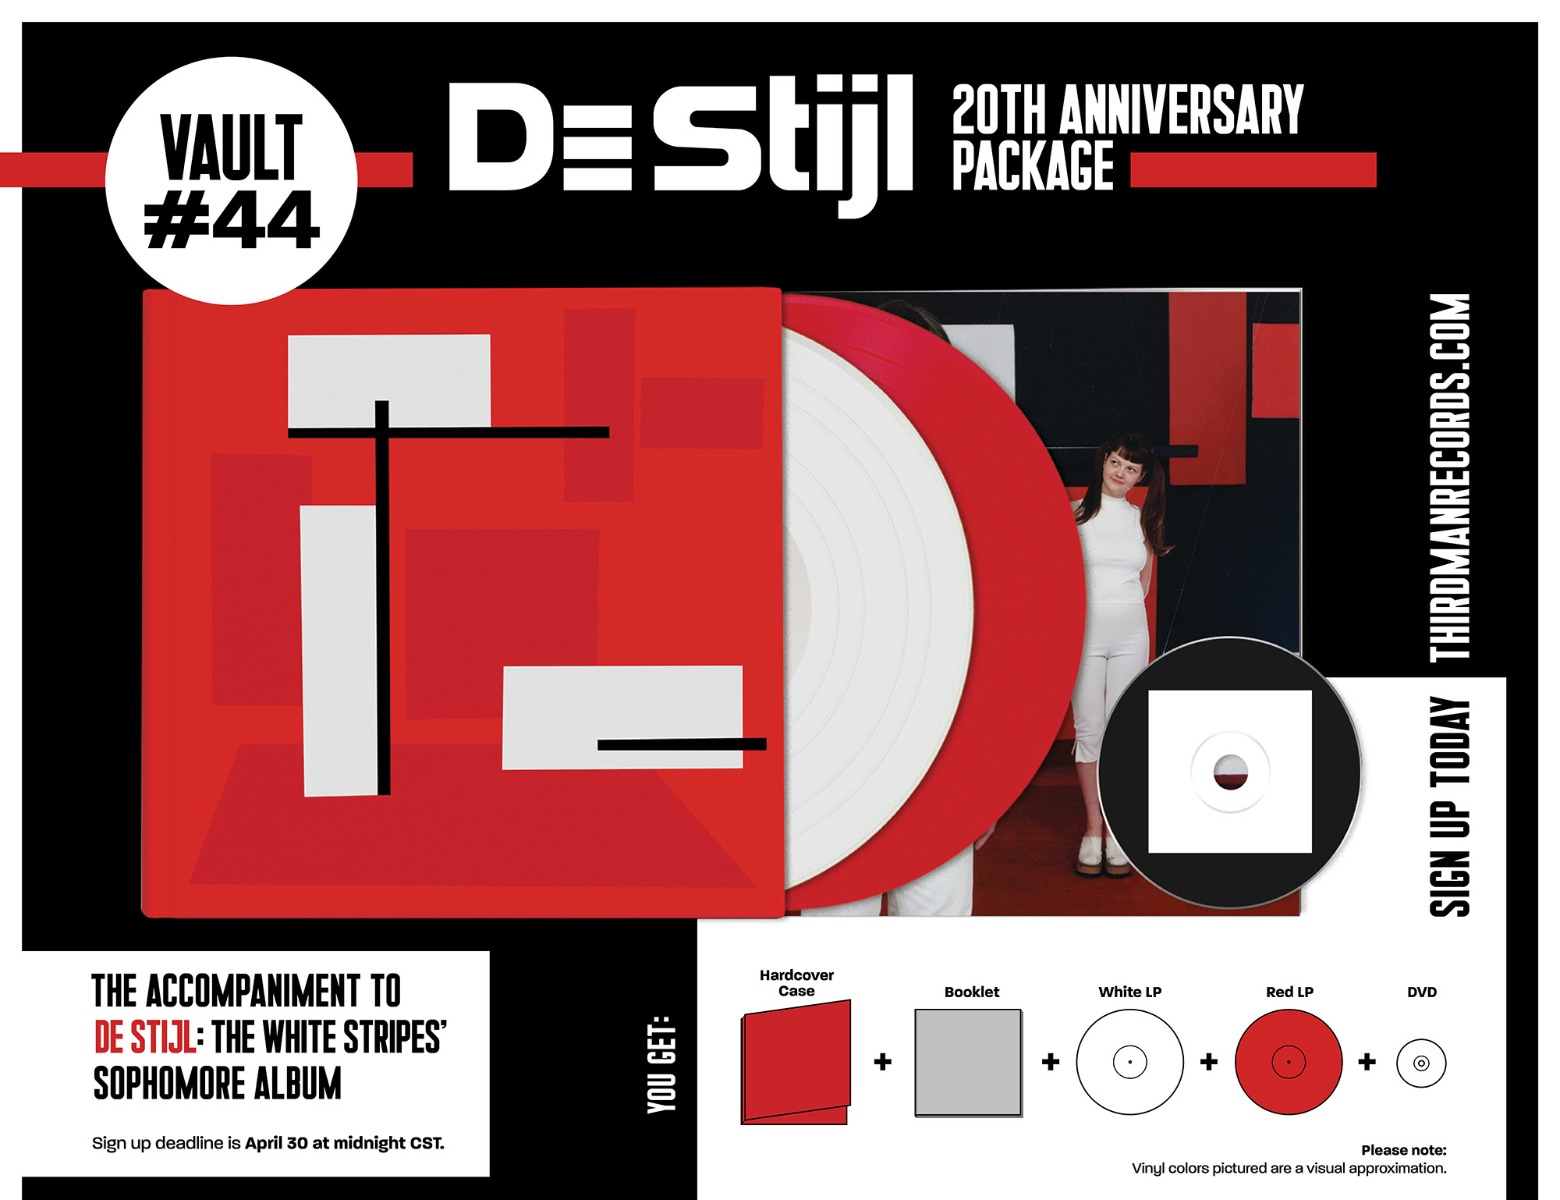 White Stripes De Stijl 20th anniversary